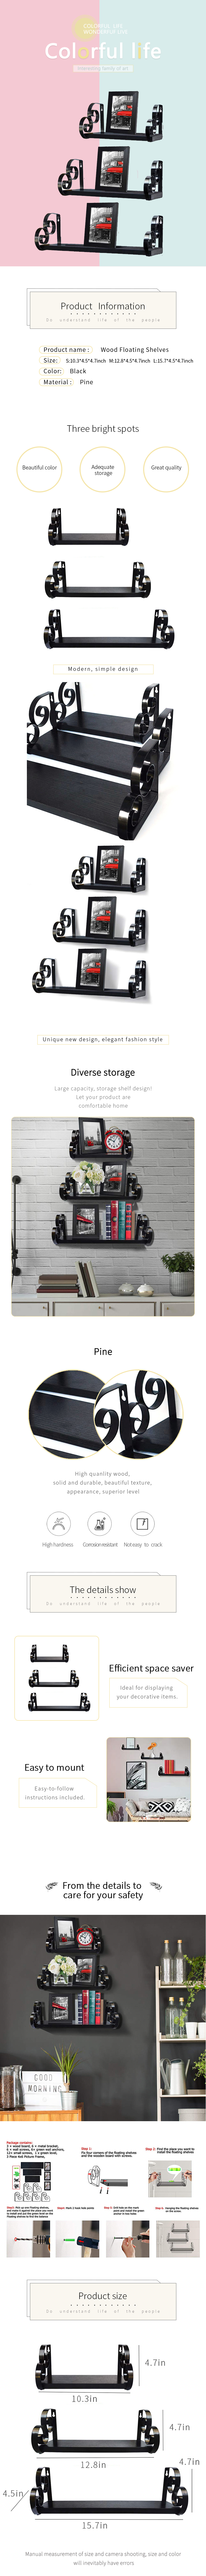 Set of 3 Floating Shelves Wall Mounted Decorative Wood Shelf for Home Decoration